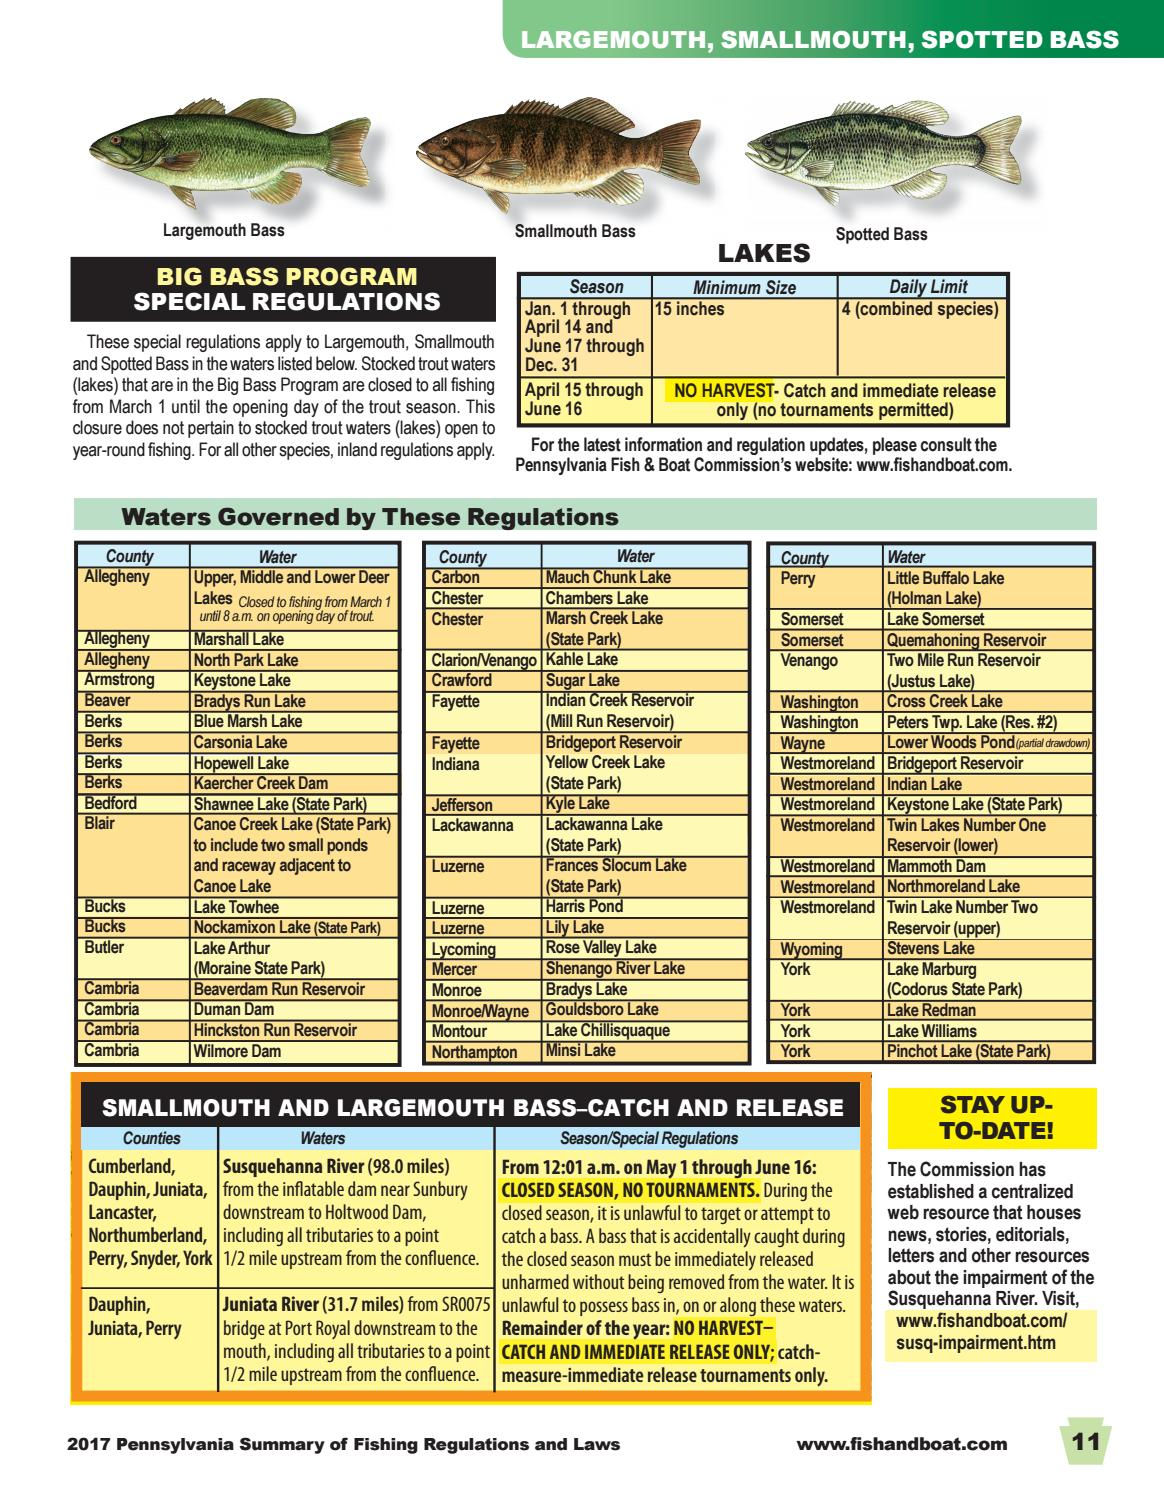 Pa fish summary 2017 by pa fish issuu for Pa fish for free days 2017